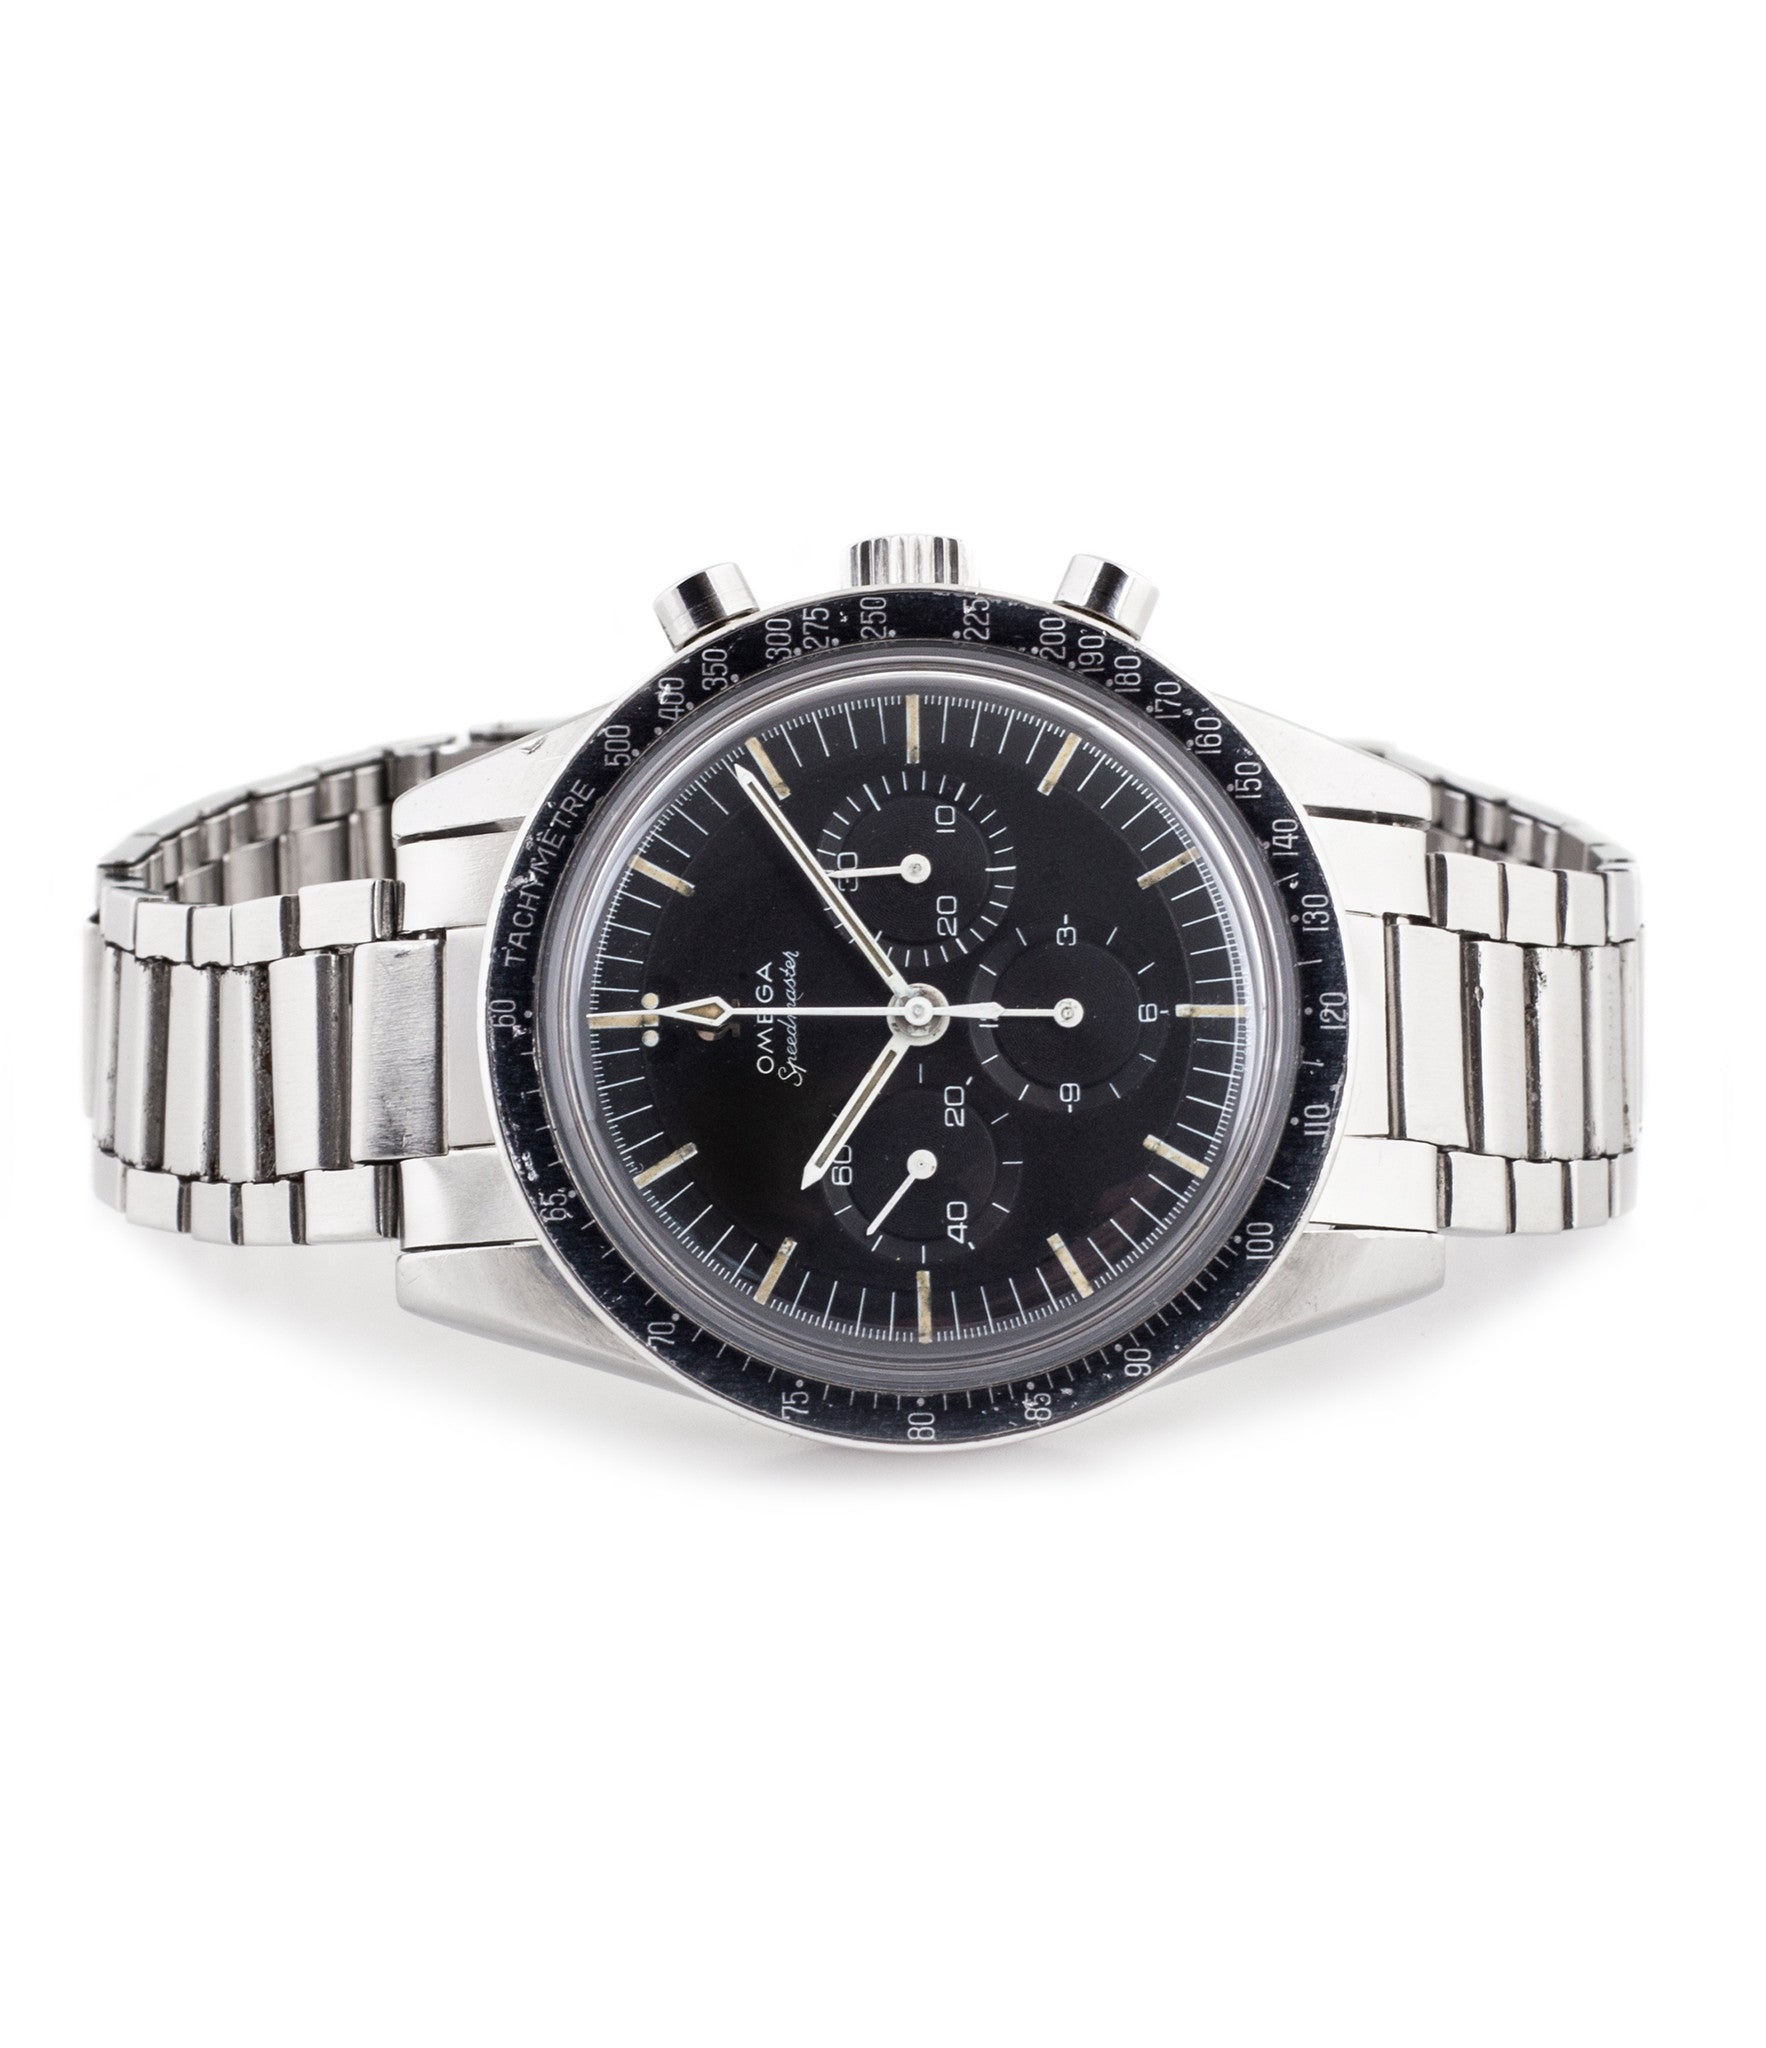 buy vintage Omega Speedmaster Ed White 105.003 steel chronograph watch full set for sale online at WATCH XCHANGE London